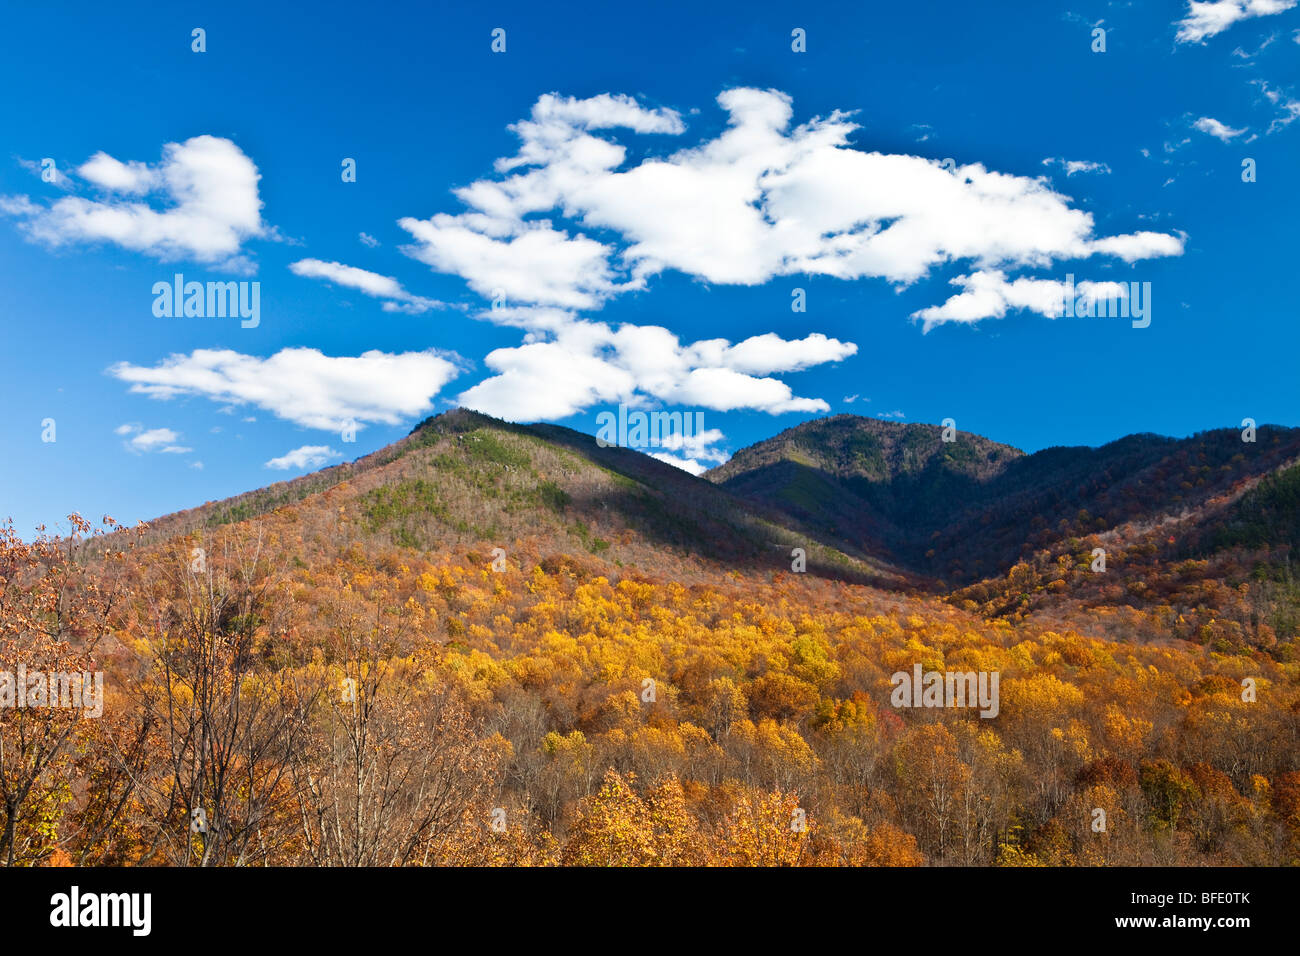 Mountains and Clouds, View from Newfound Gap Road, Great Smoky Mountains National Park, Tennessee - Stock Image